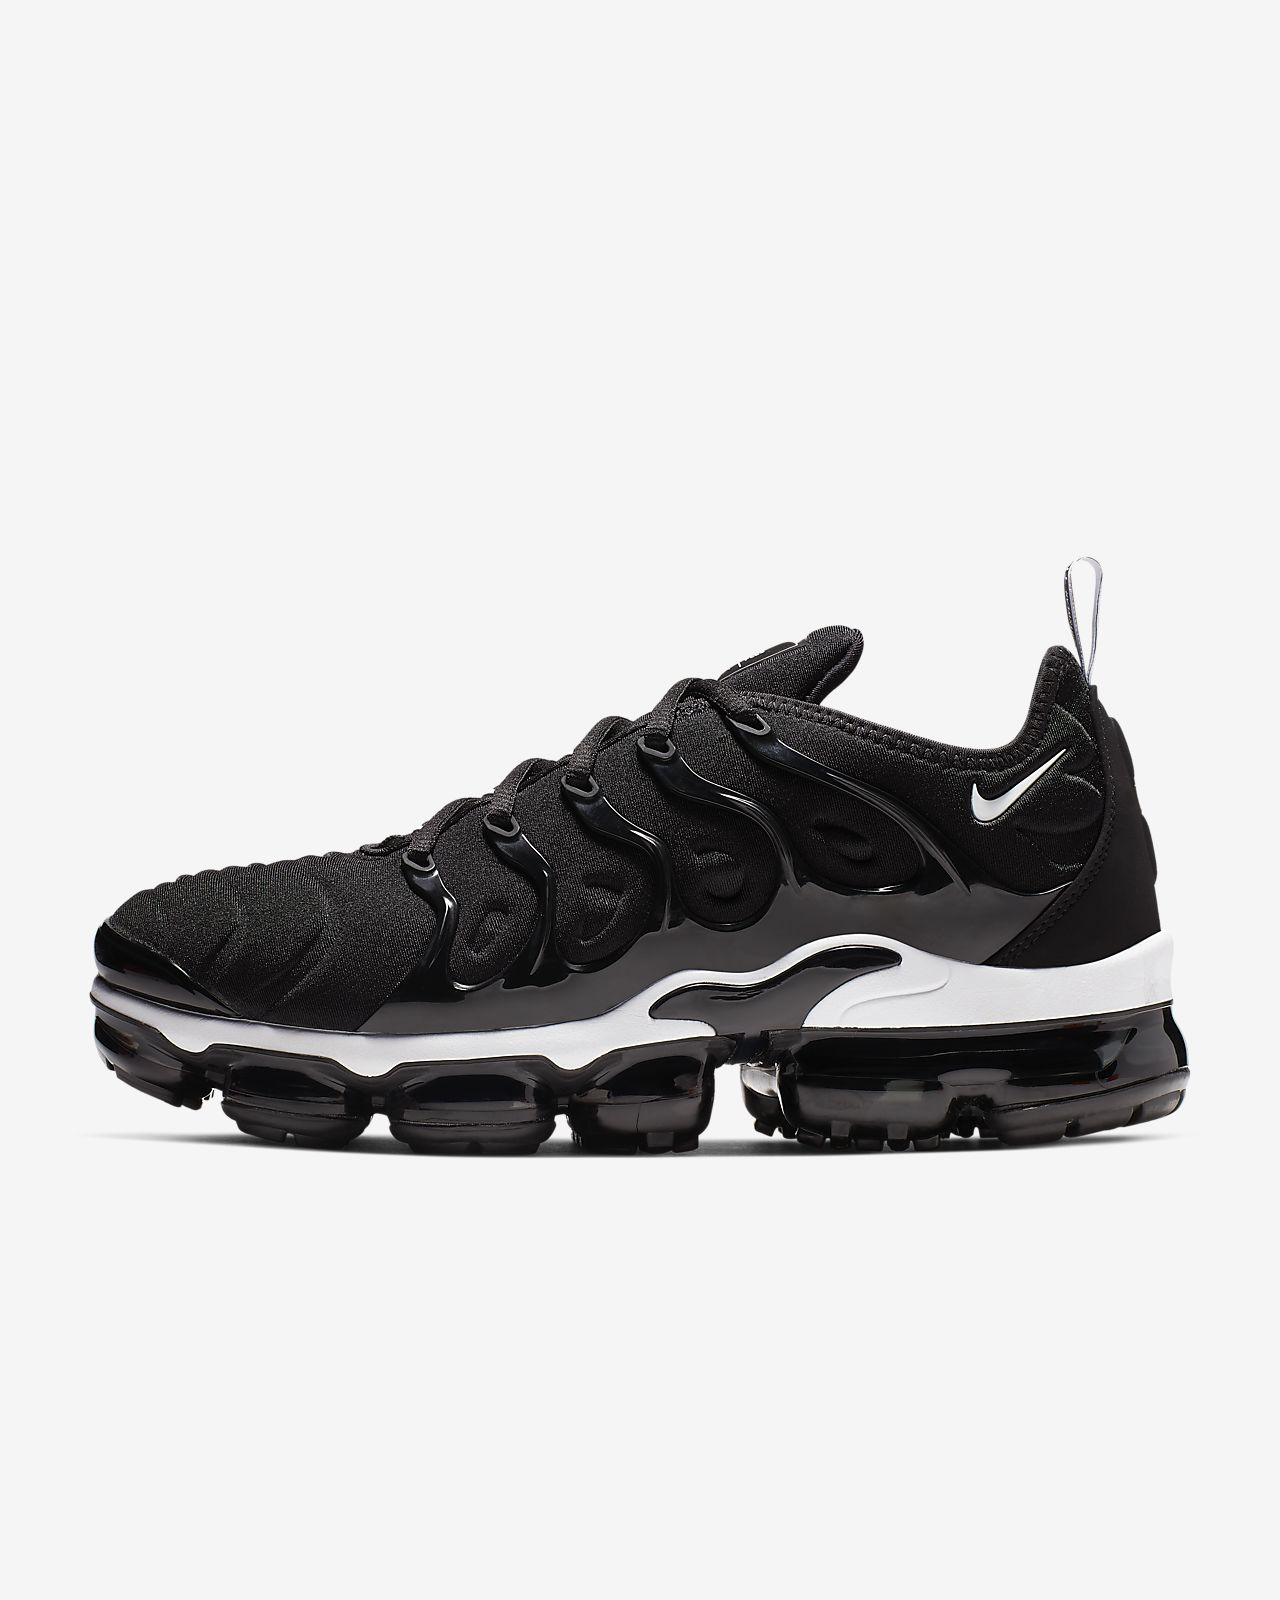 2ba806e49a2 Nike Air VaporMax Plus Men s Shoe. Nike.com CA